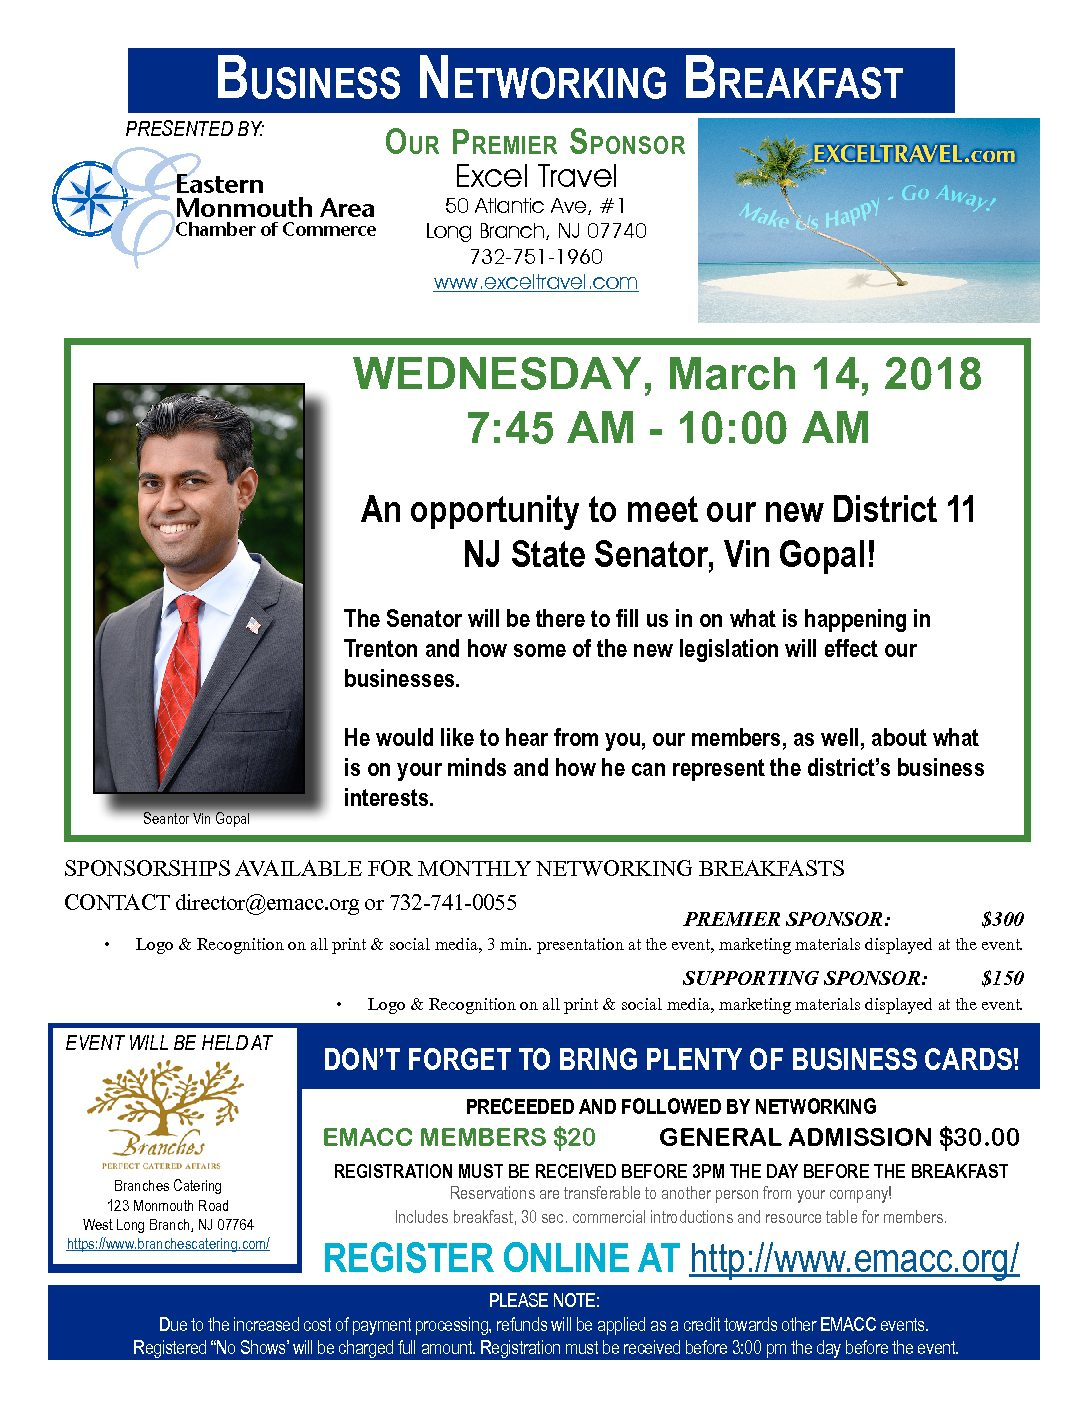 Business Networking Breakfast 3-14-2018